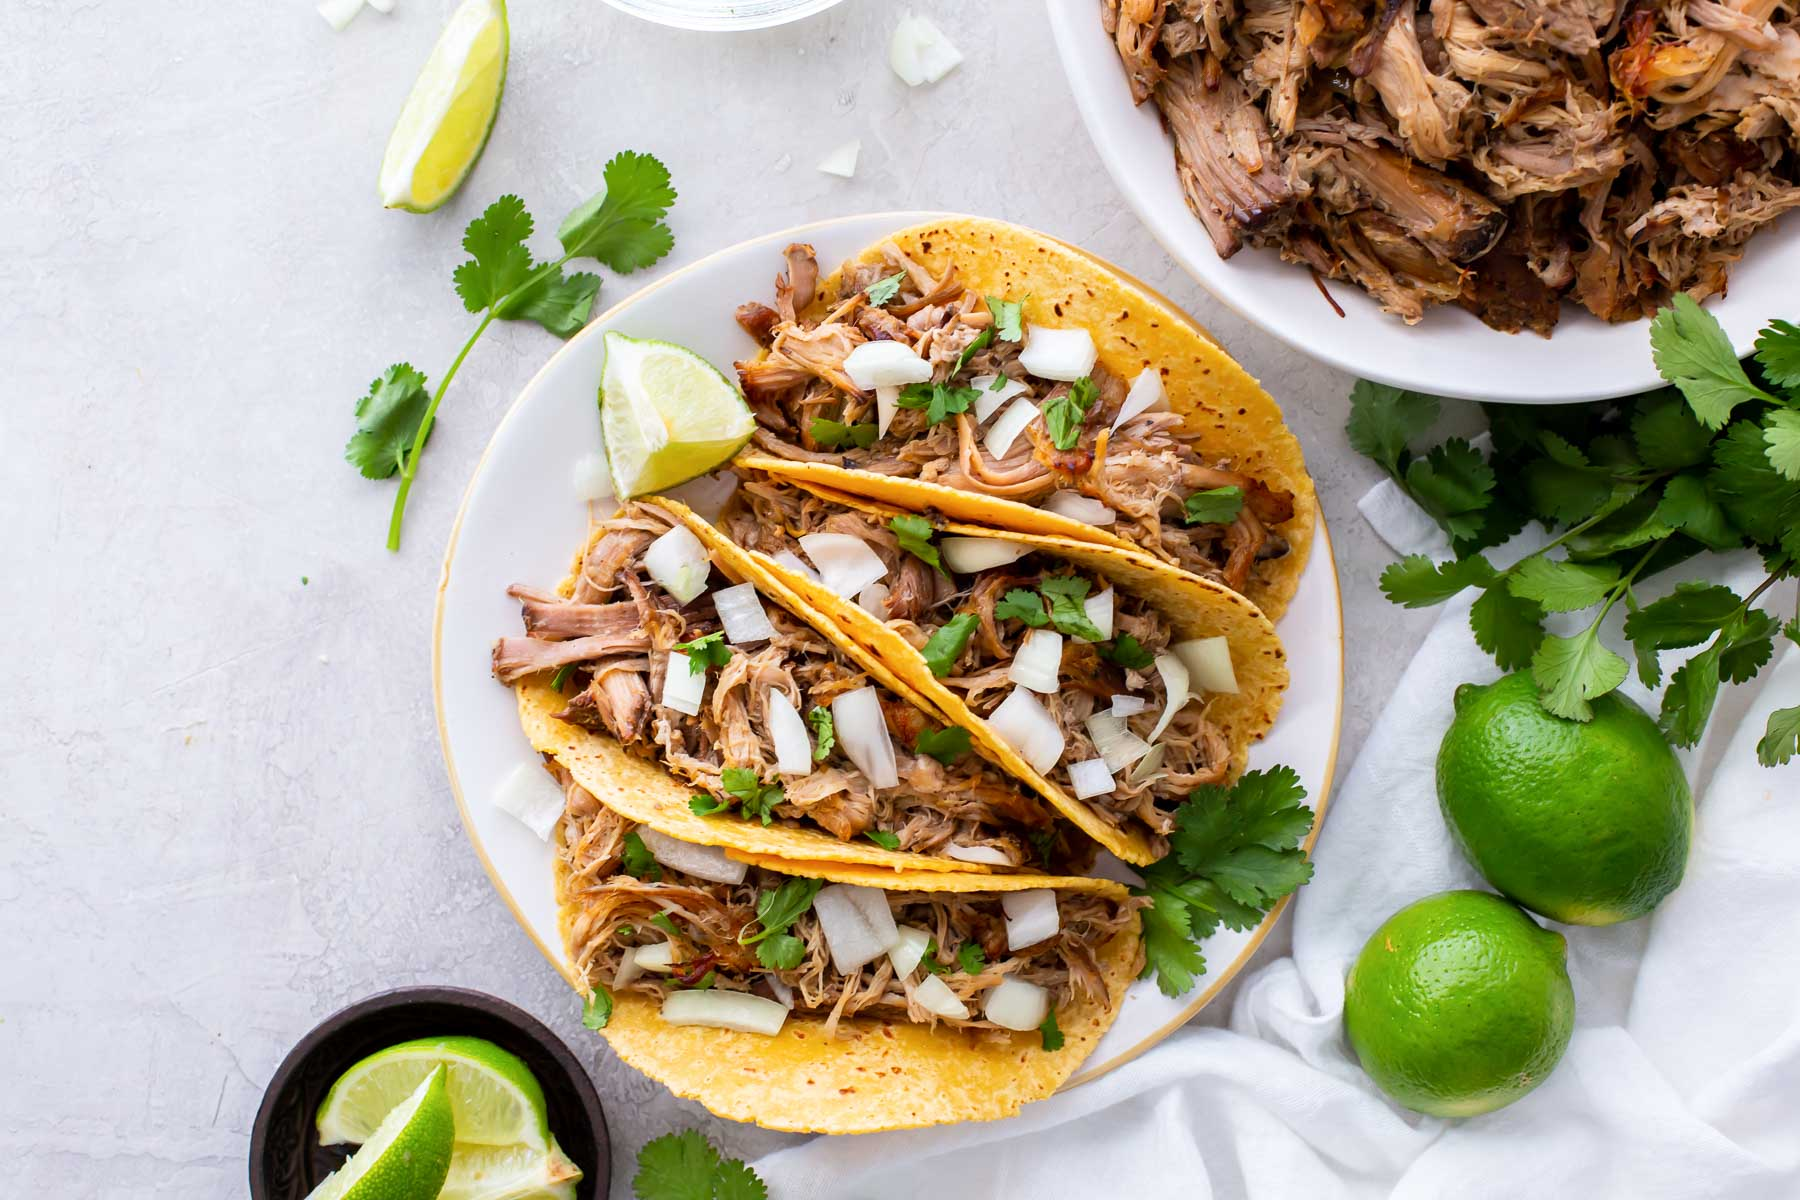 shredded pork tacos on a plate with bowl of carnitas in background